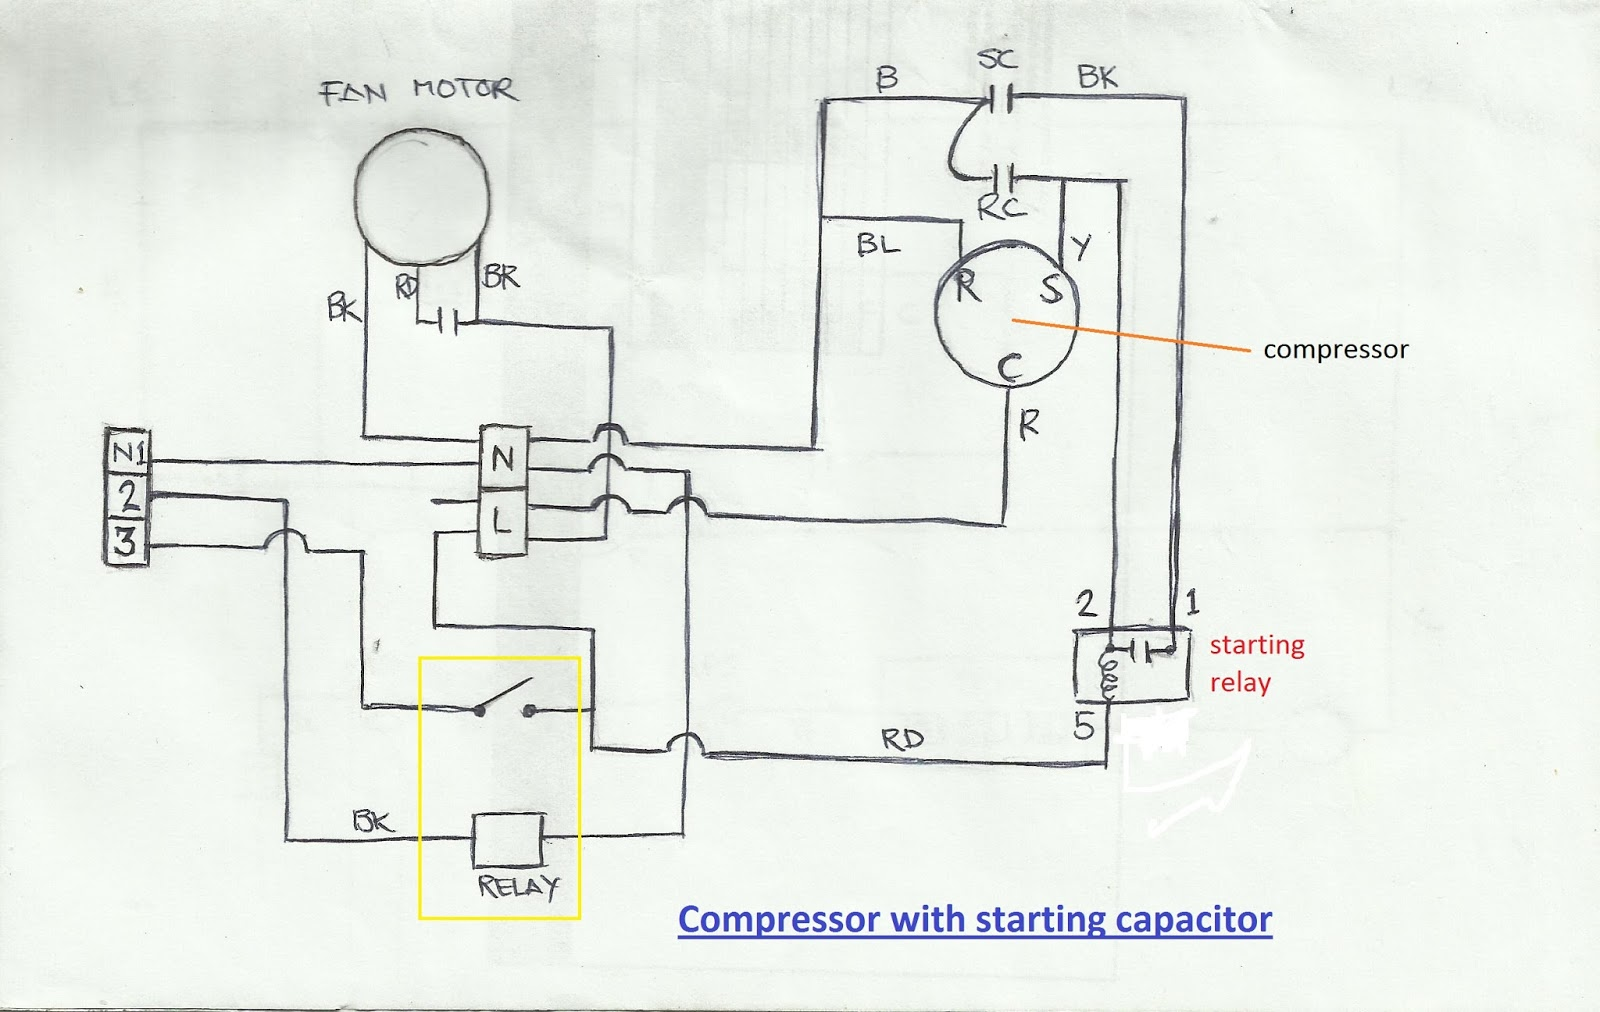 18 refrigeration and air conditioning repair wiring diagram of compressor start capacitor wiring diagram at suagrazia.org